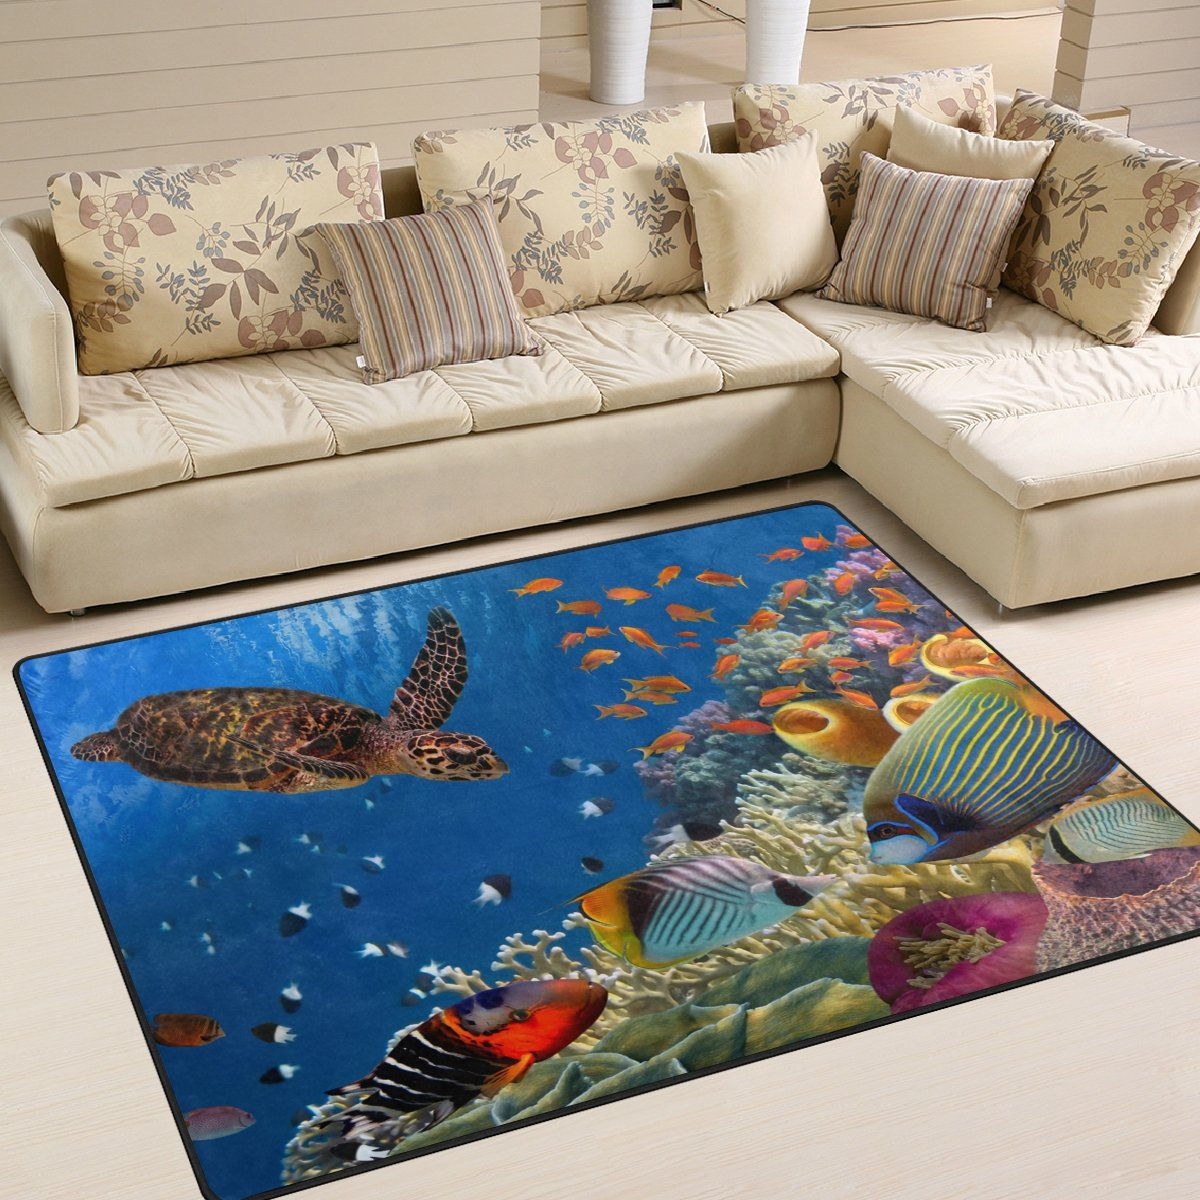 YZGO Colorful Coral Reef Turtle Fishes Under Sea Rug, Kids Children Area Rugs Non-Slip Floor Mat Resting Area Doormats